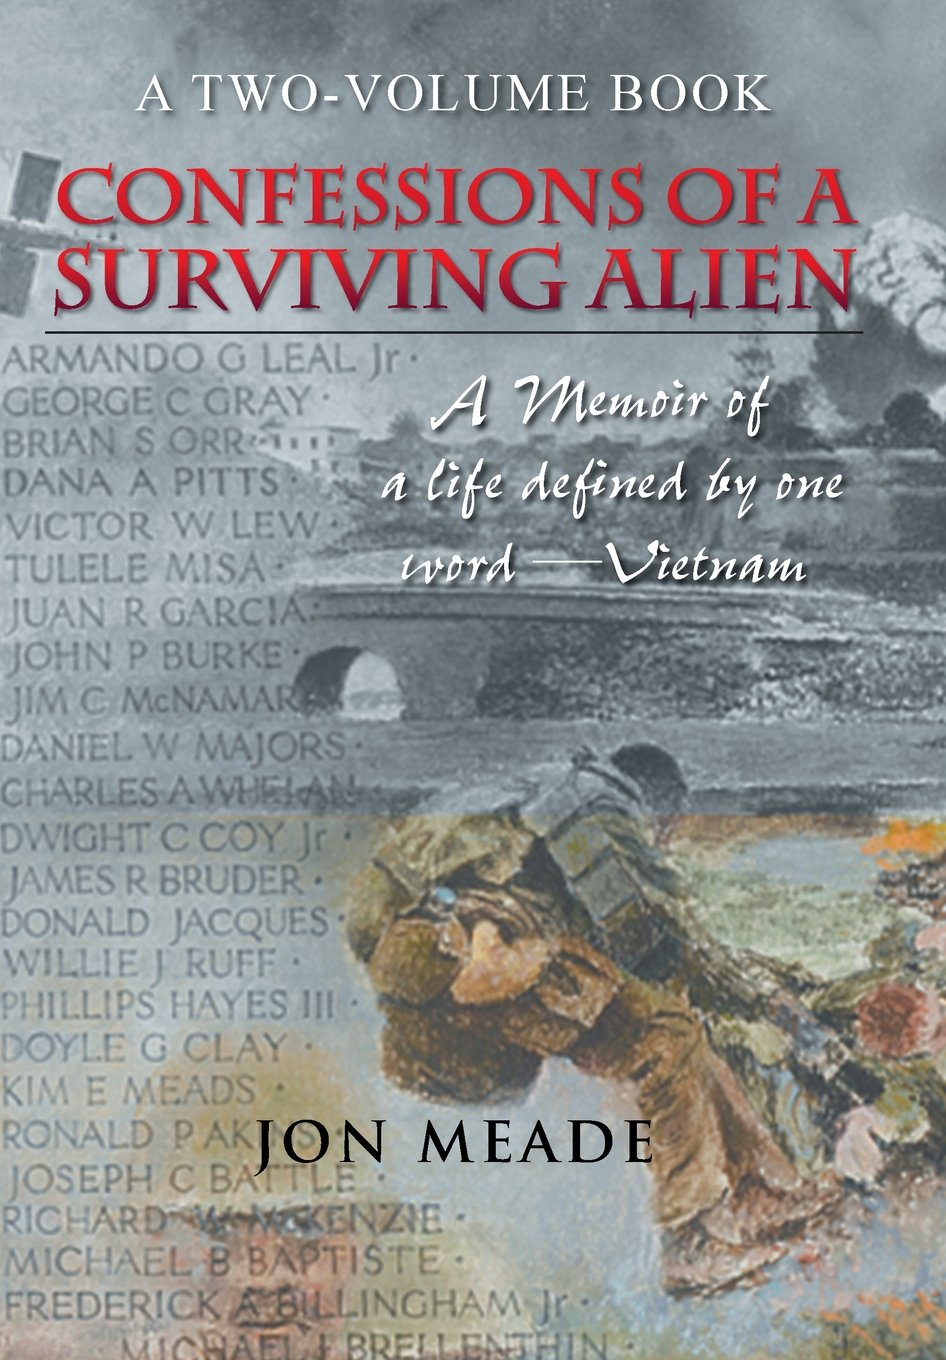 Download Confessions of a Surviving Alien: A Memoir of a Life Defined by One Word-Vietnam ebook